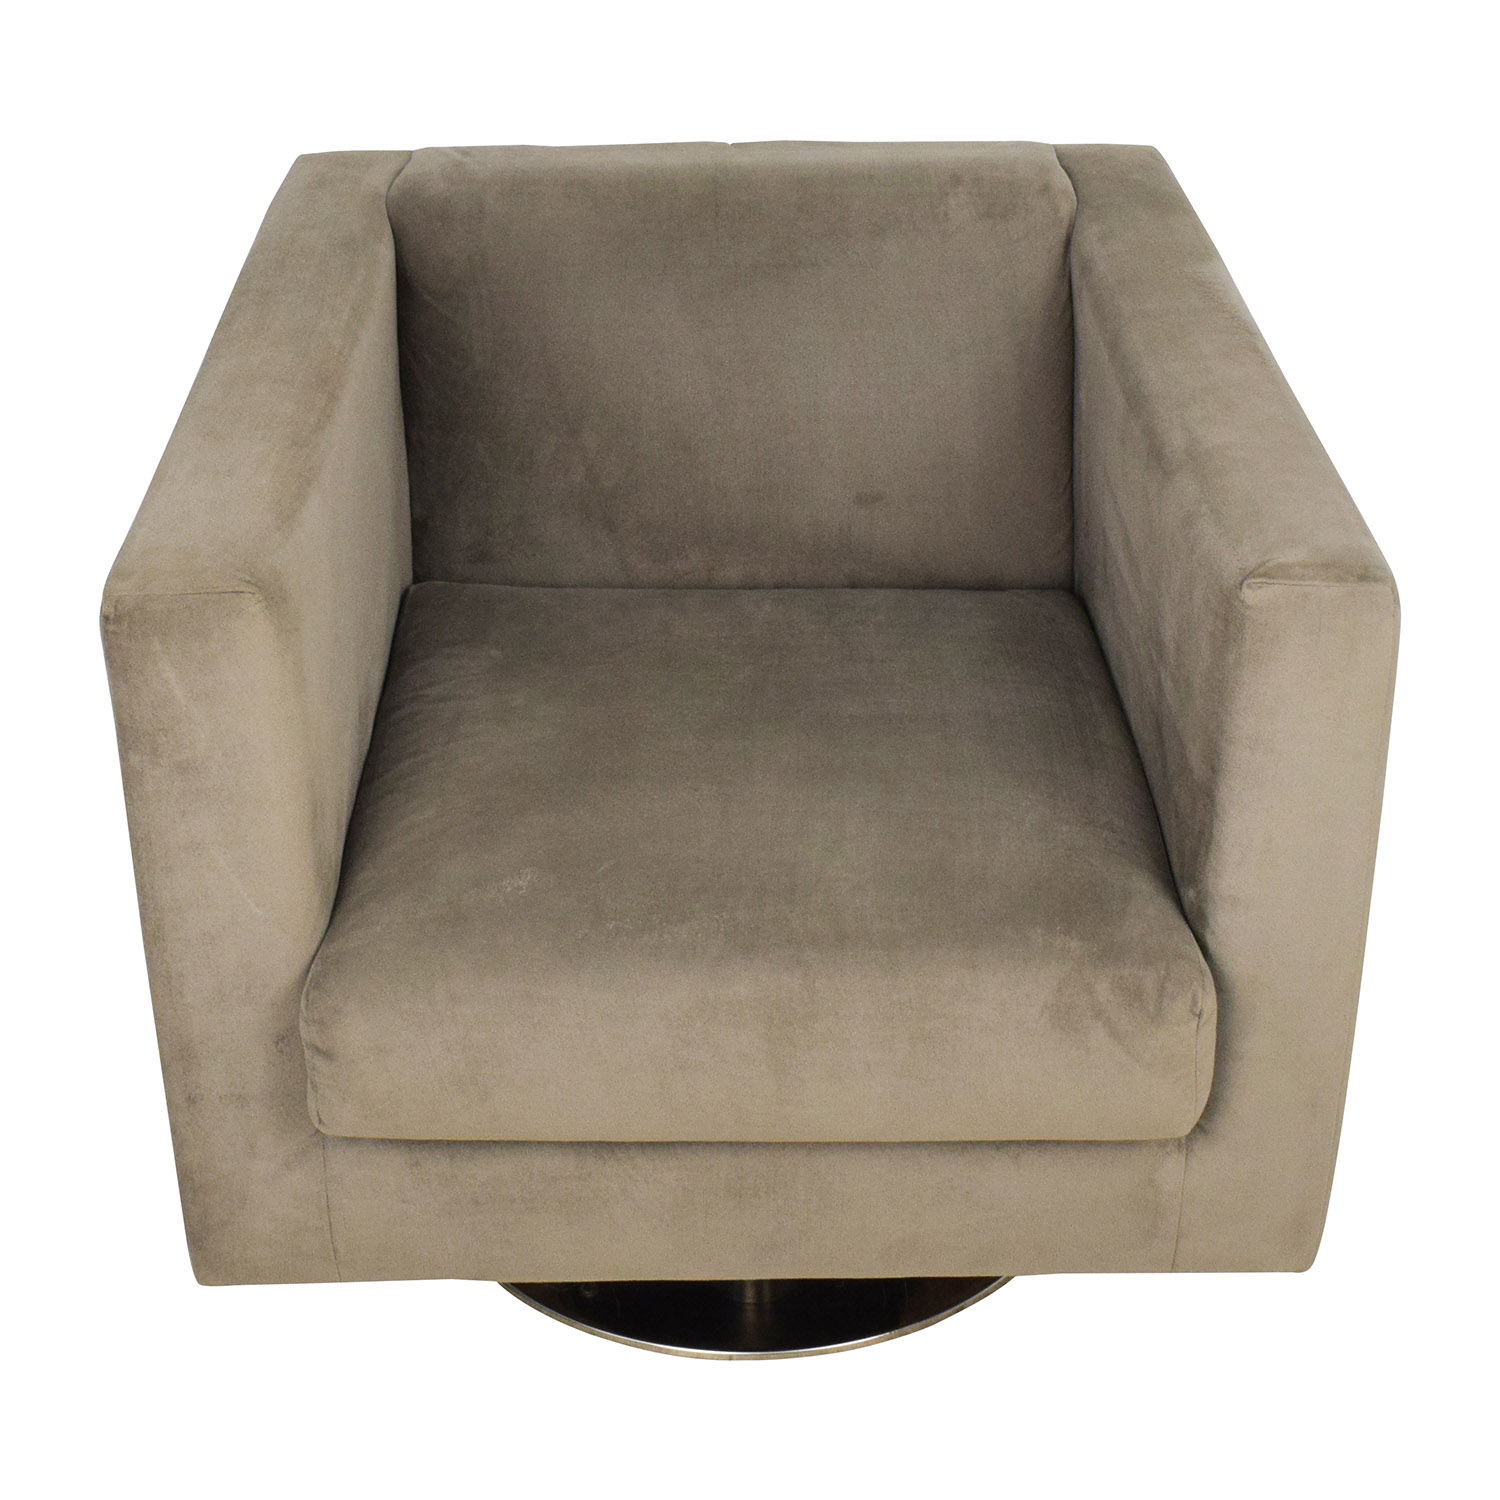 Rowe Rowe Grey Swivel Chair on sale